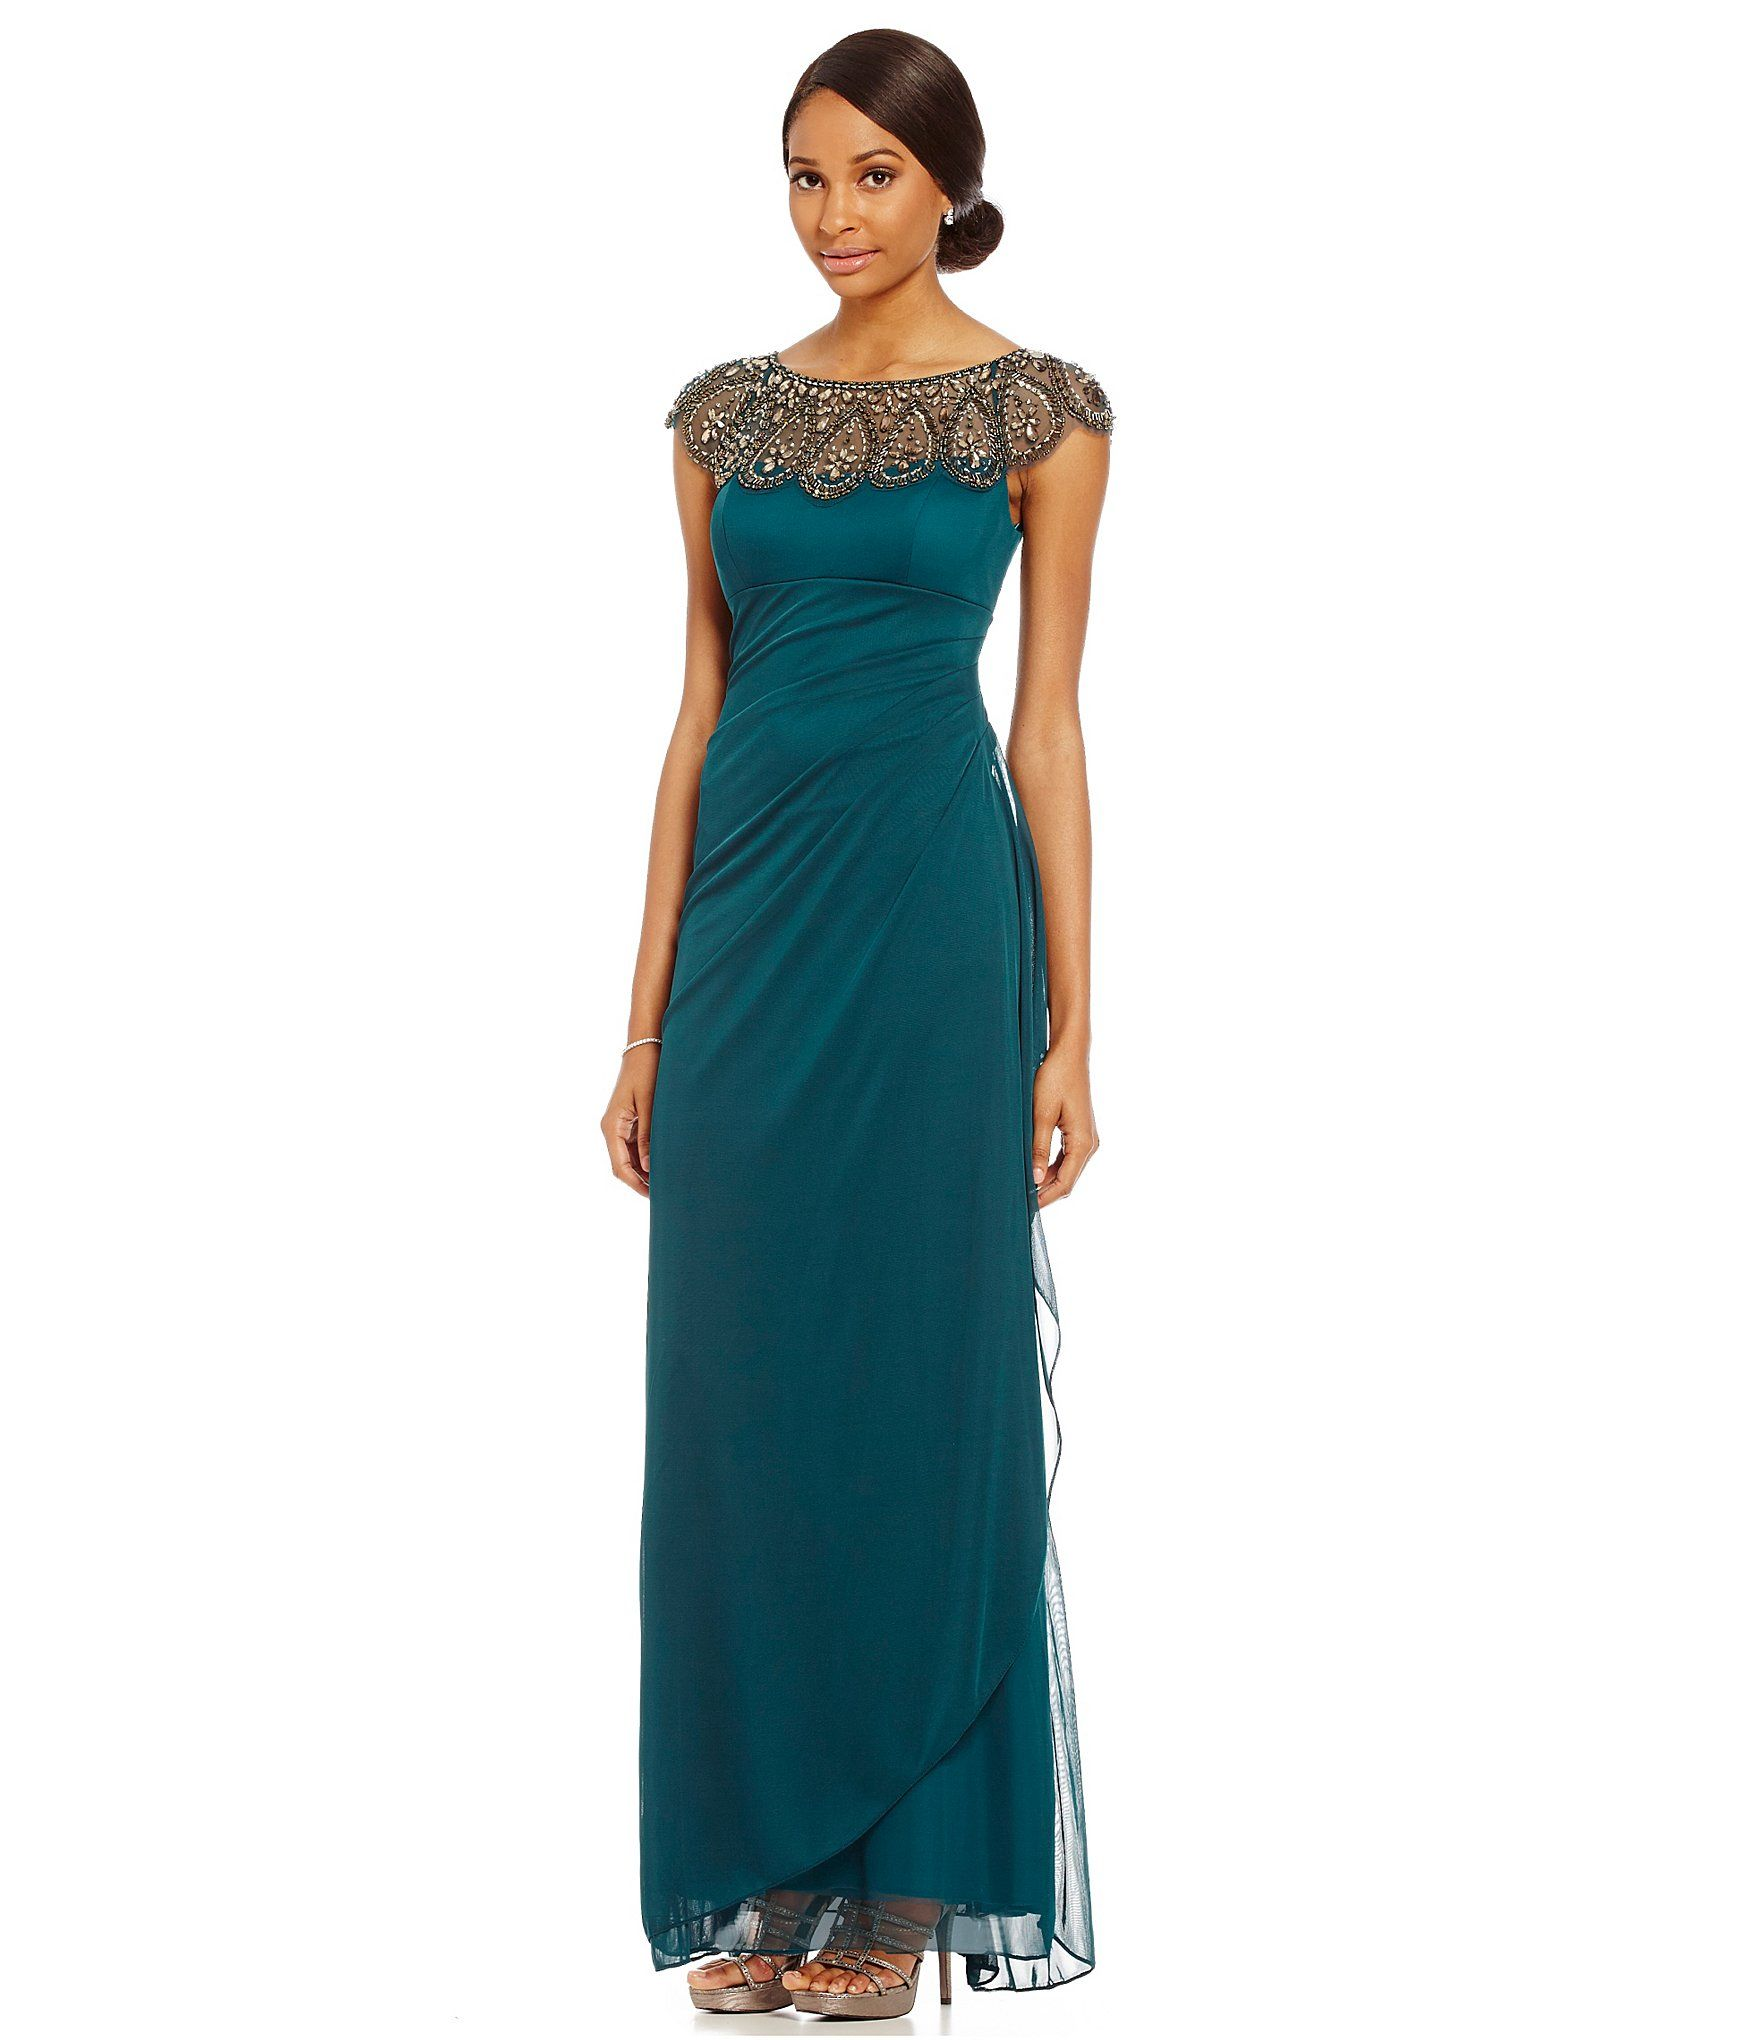 a69bdba7183 Xscape Beaded Illusion Neck Ruched Gown